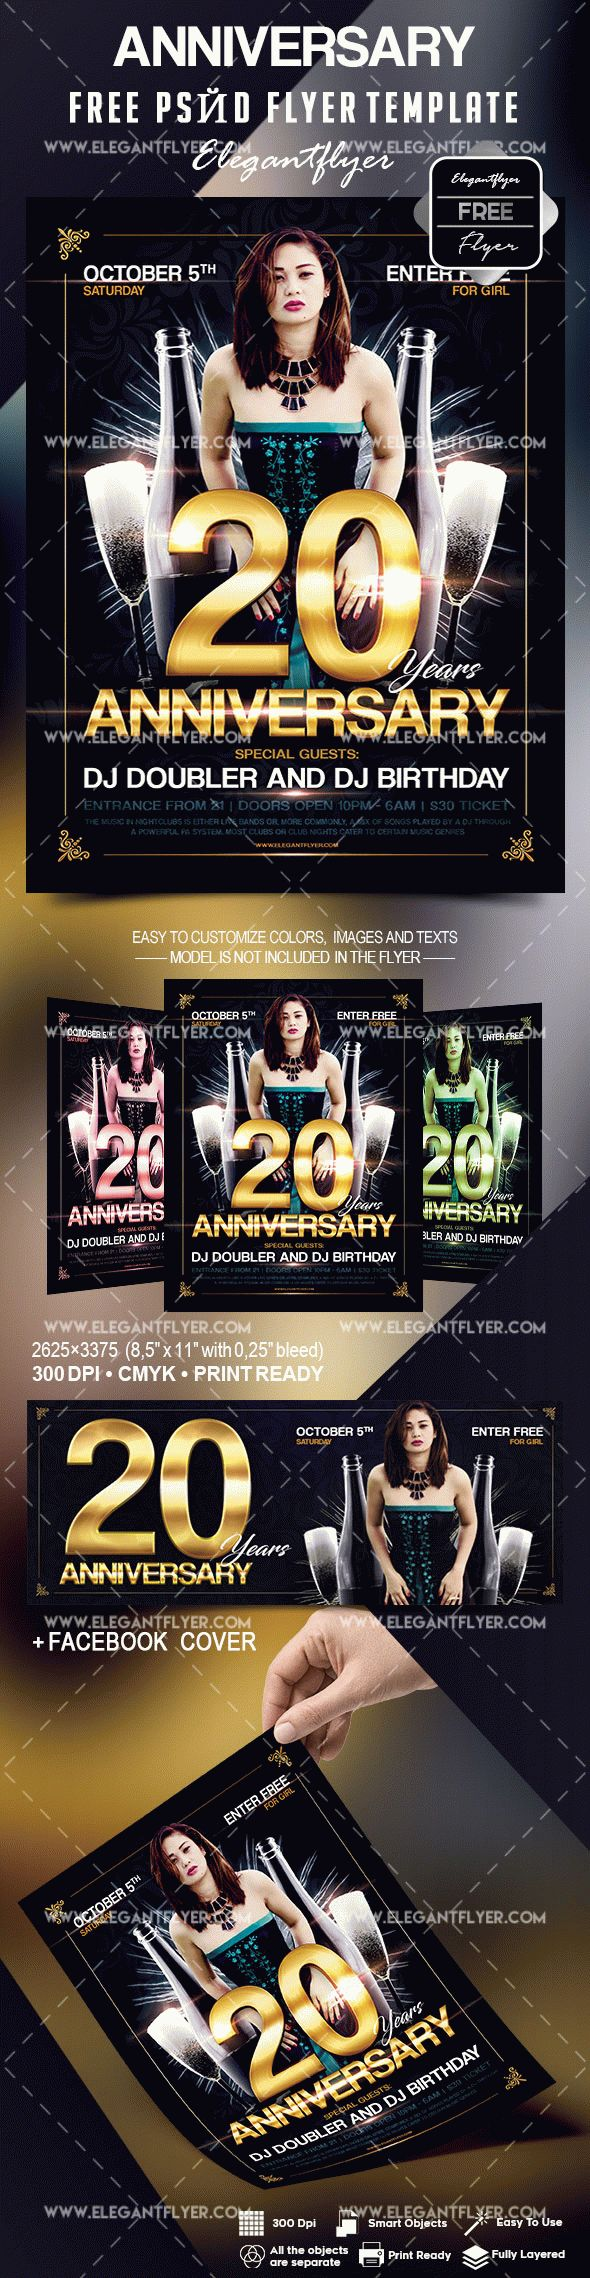 Anniversary flyers template free by elegantflyer anniversary flyers template free pronofoot35fo Gallery